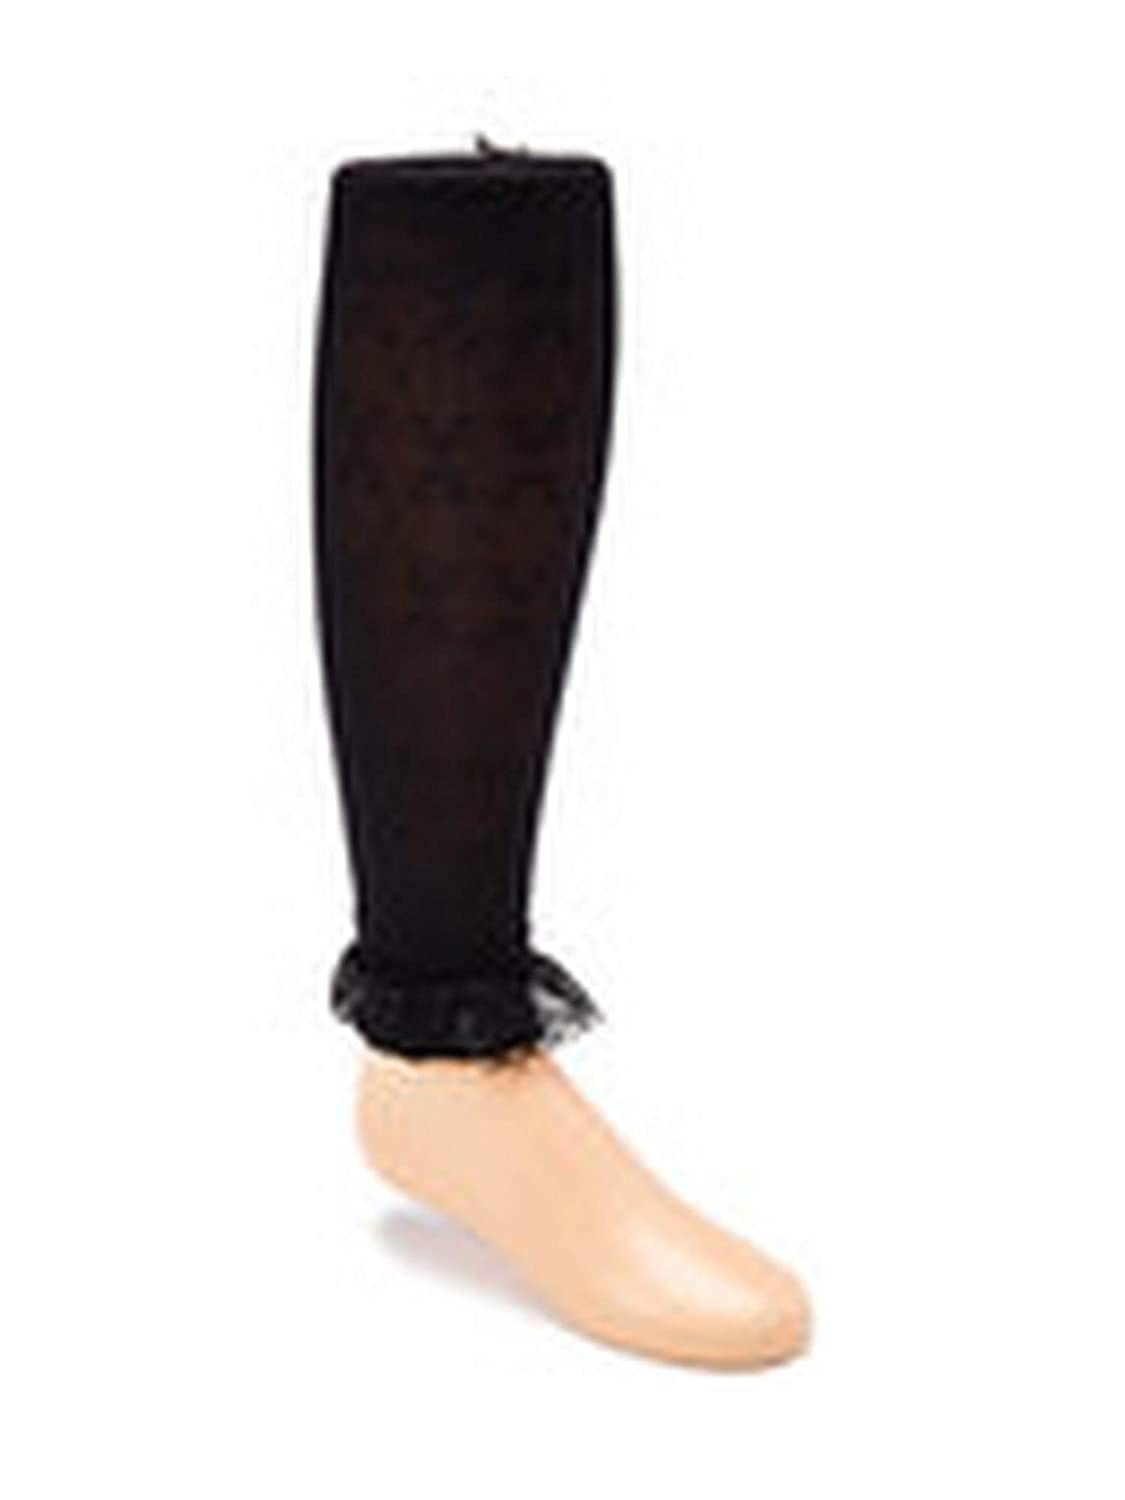 Wenchoice Big Girls Black Solid Color Ruffle Lace Ankle Trim Tights 8-15